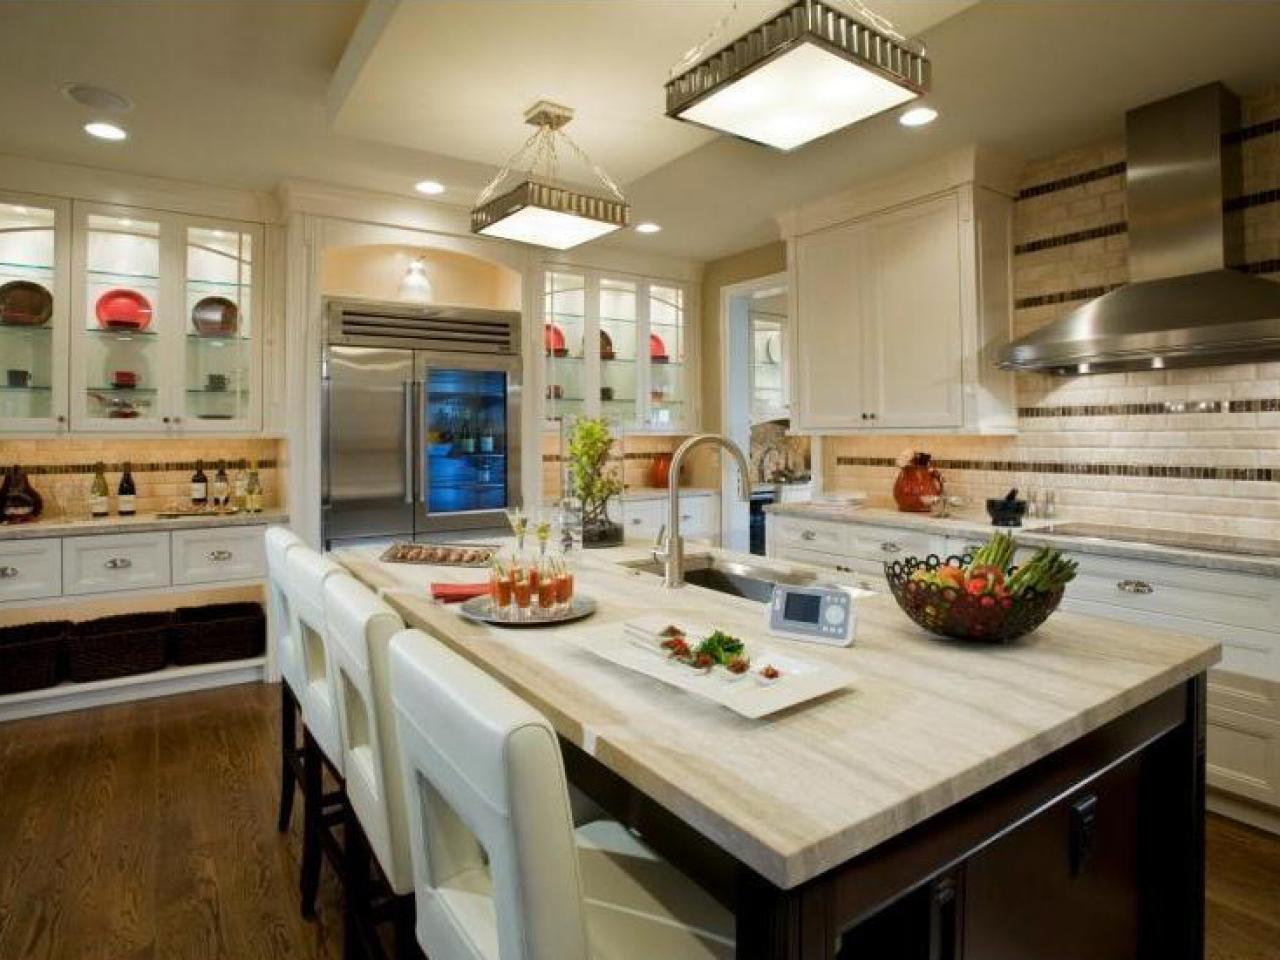 Refinish Kitchen Countertops Pictures Ideas From HGTV HGTV